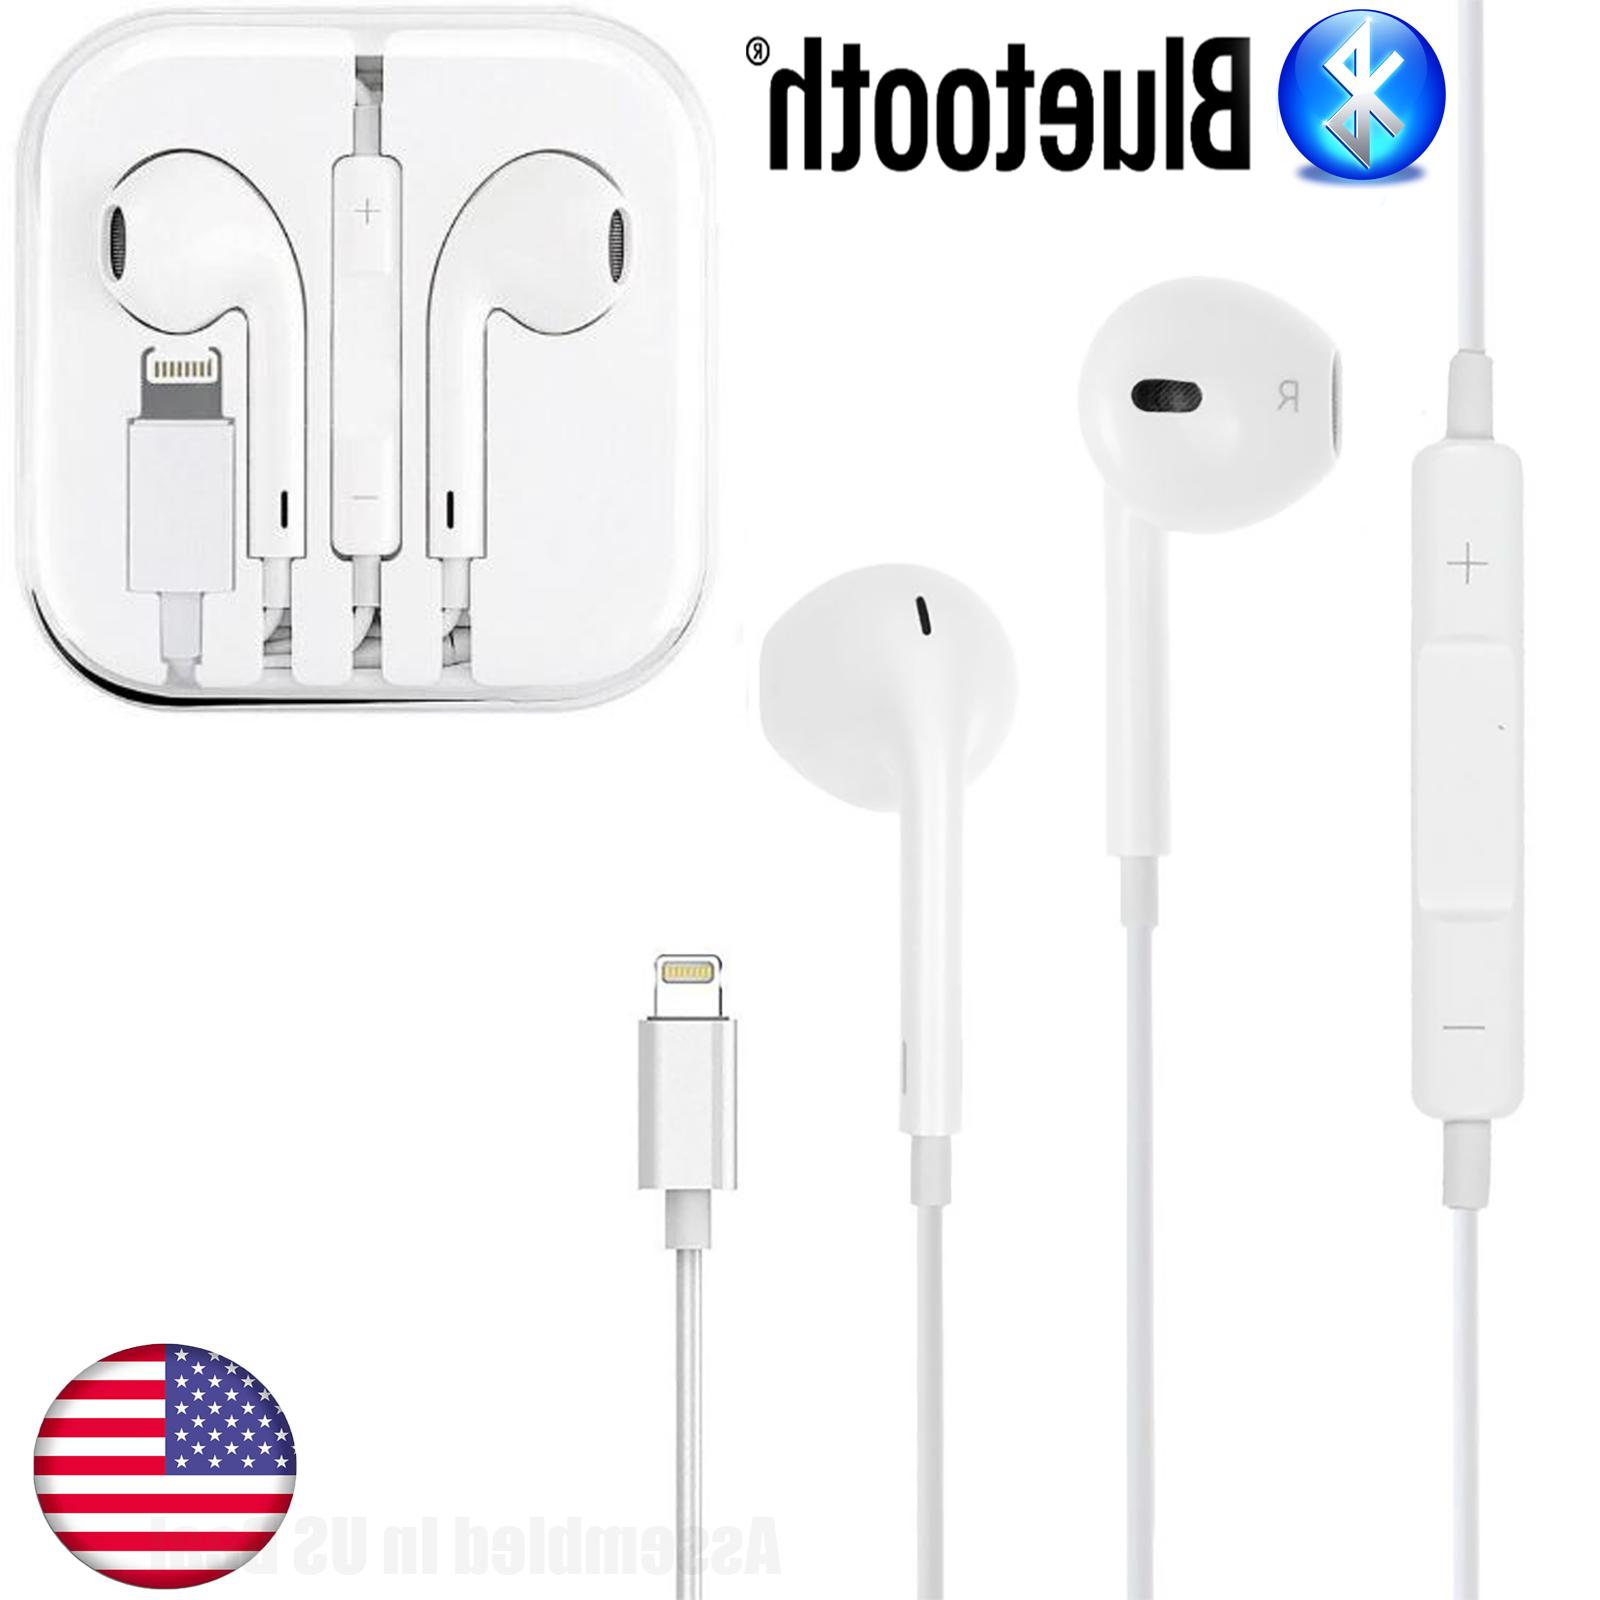 OEM Quality Headphones Bluetooth Earbuds Headsets iPhone 6 7 X PLUS